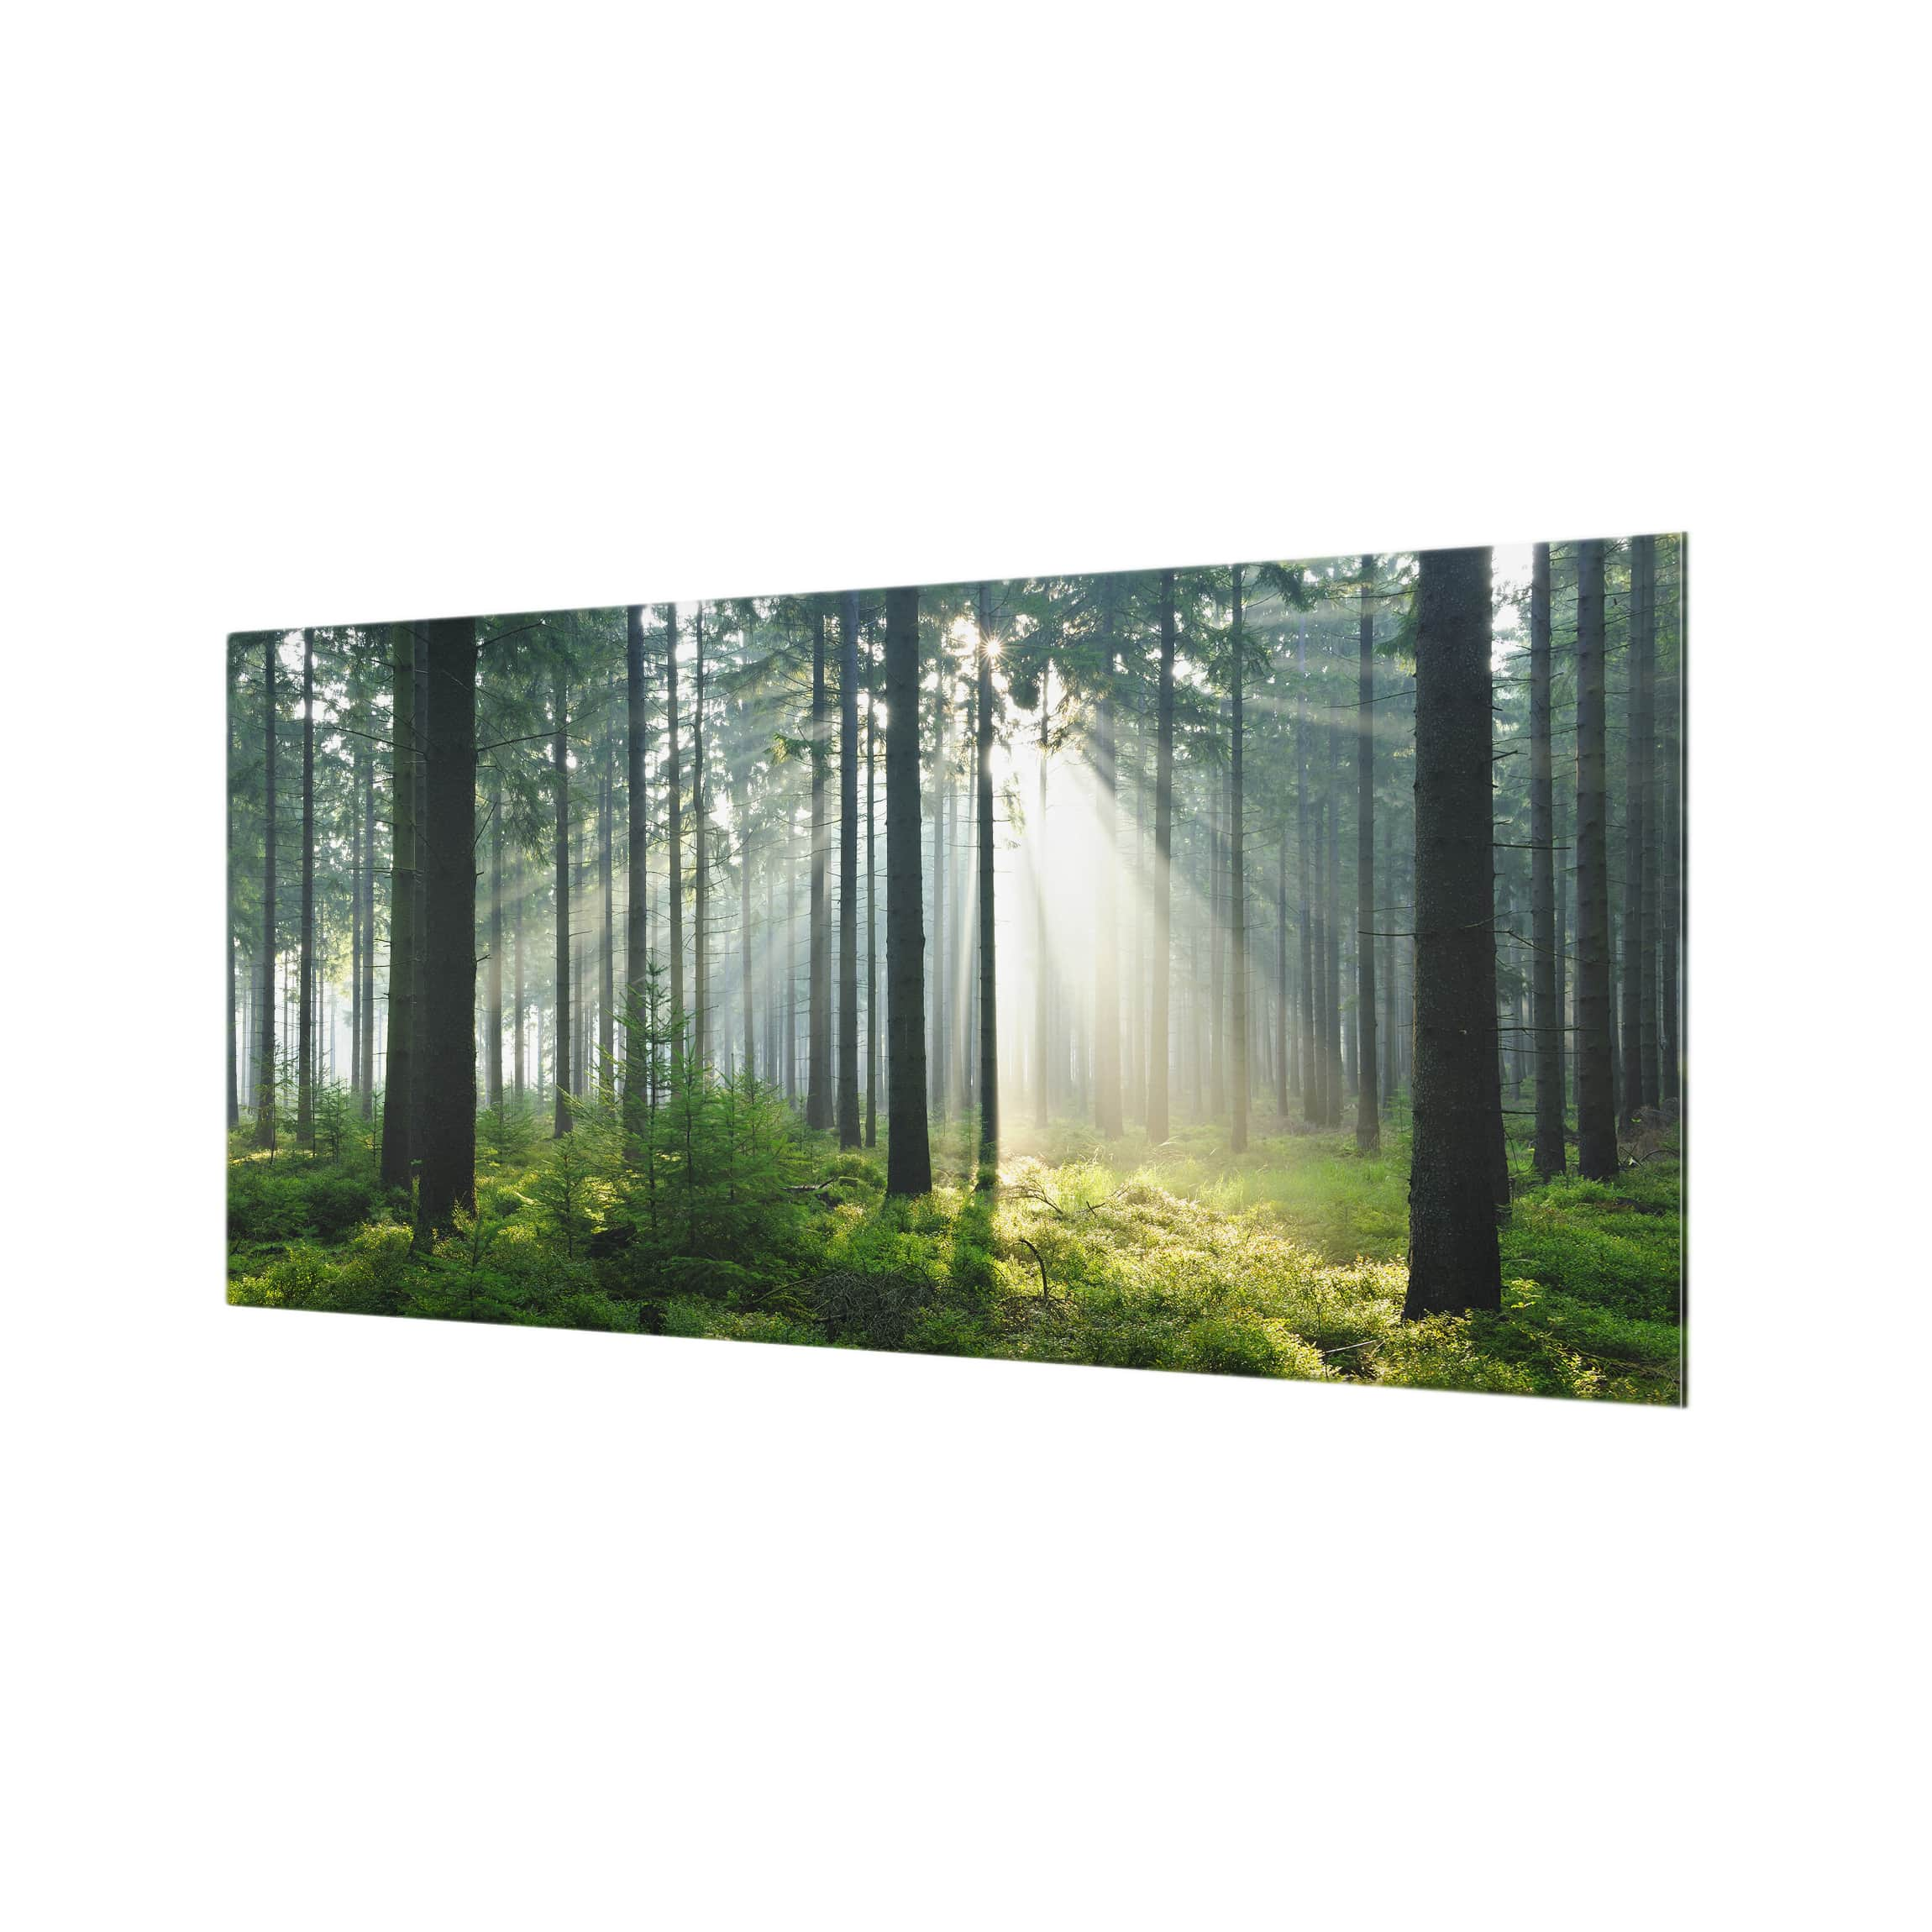 Spritzschutz glas enlightened forest quer 1 2 for Spritzschutz glas